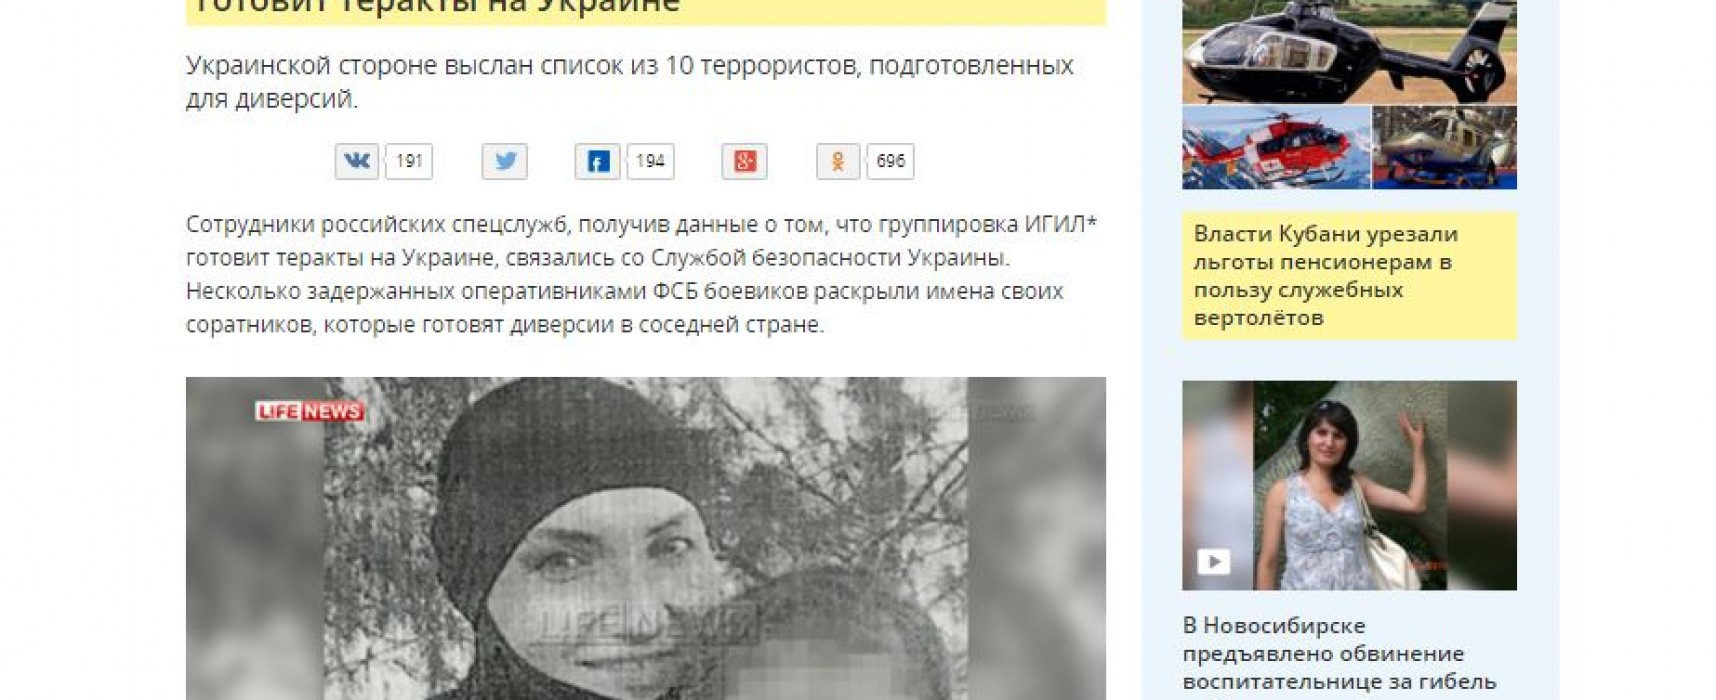 Fake: Russian Secret Services Claim ISIS to Attack Ukraine